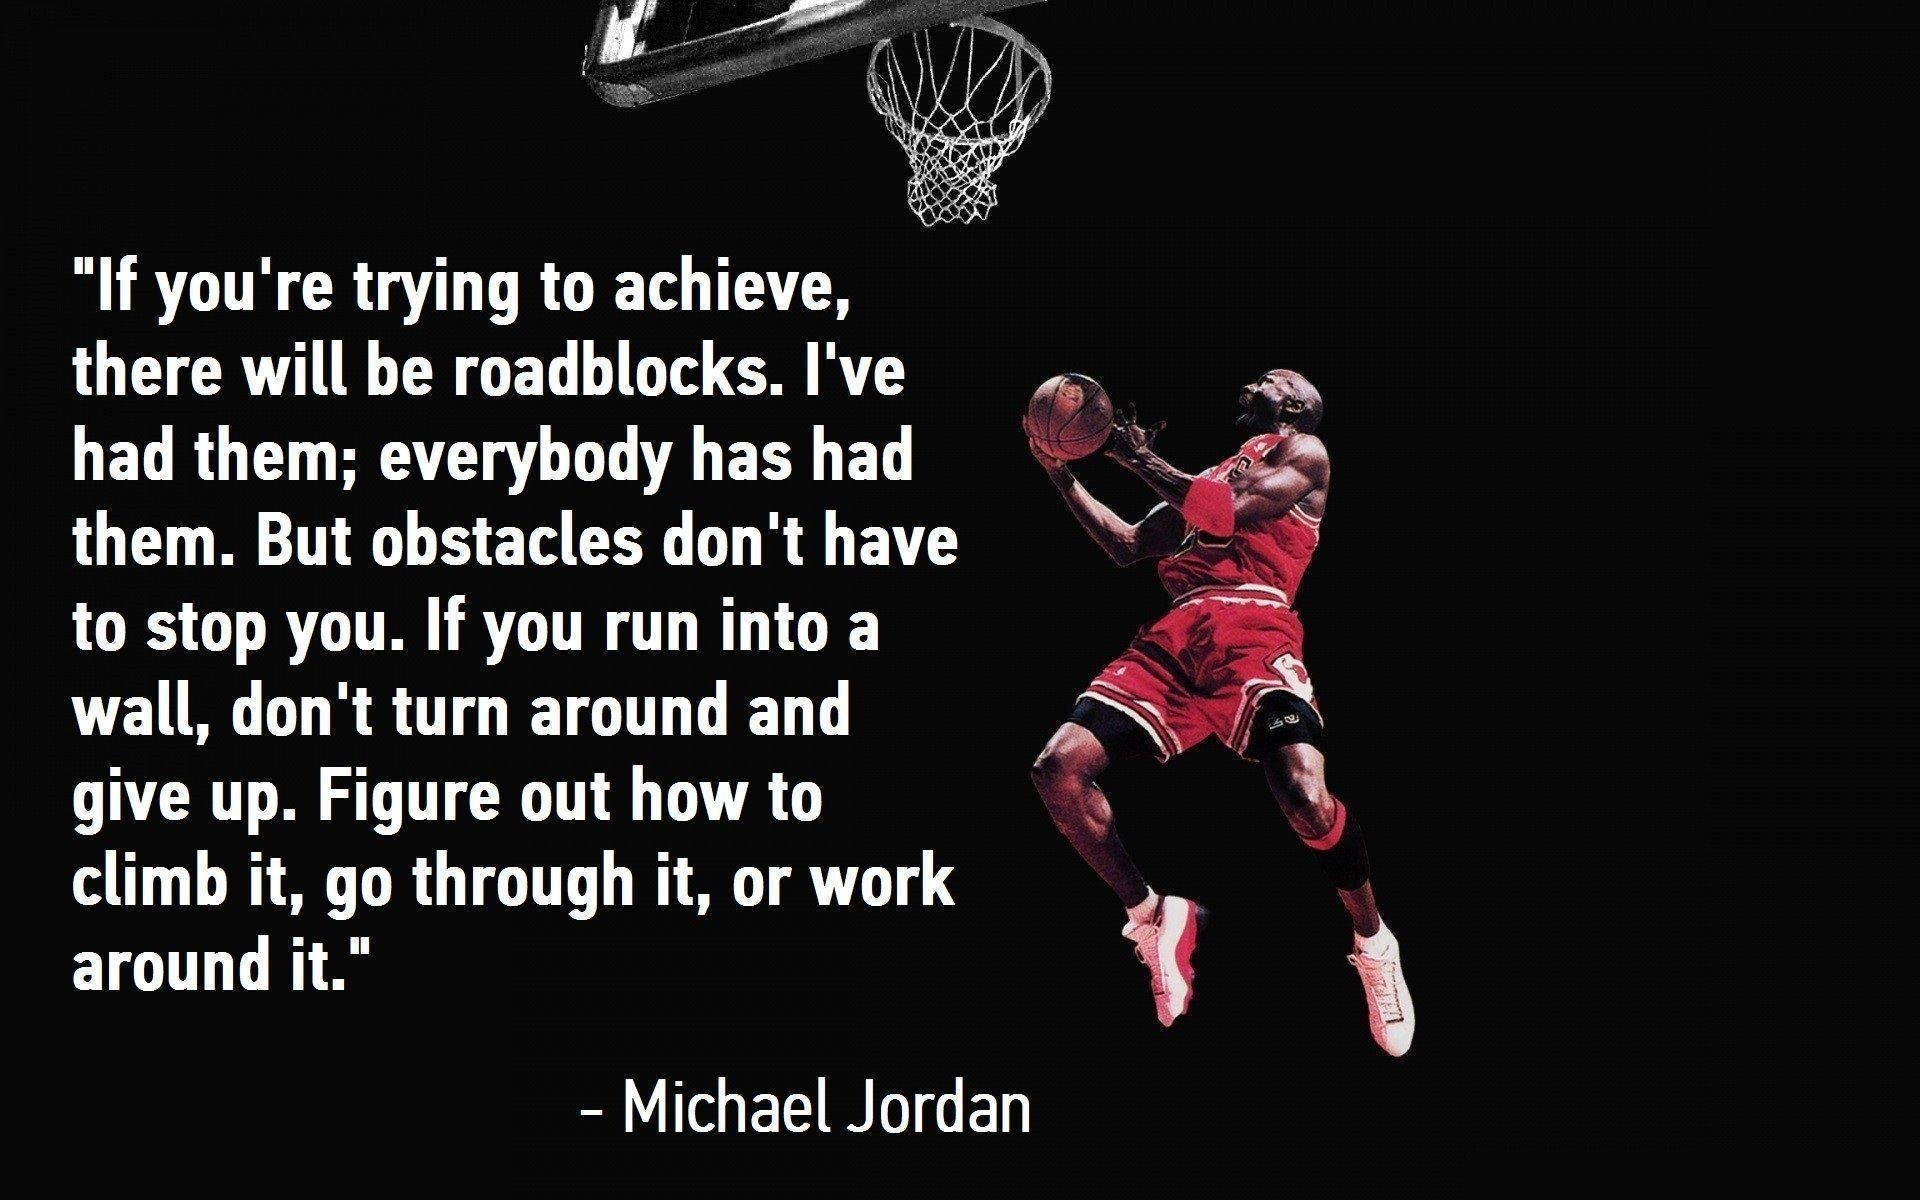 michael jordan quote wallpapers - wallpaper cave